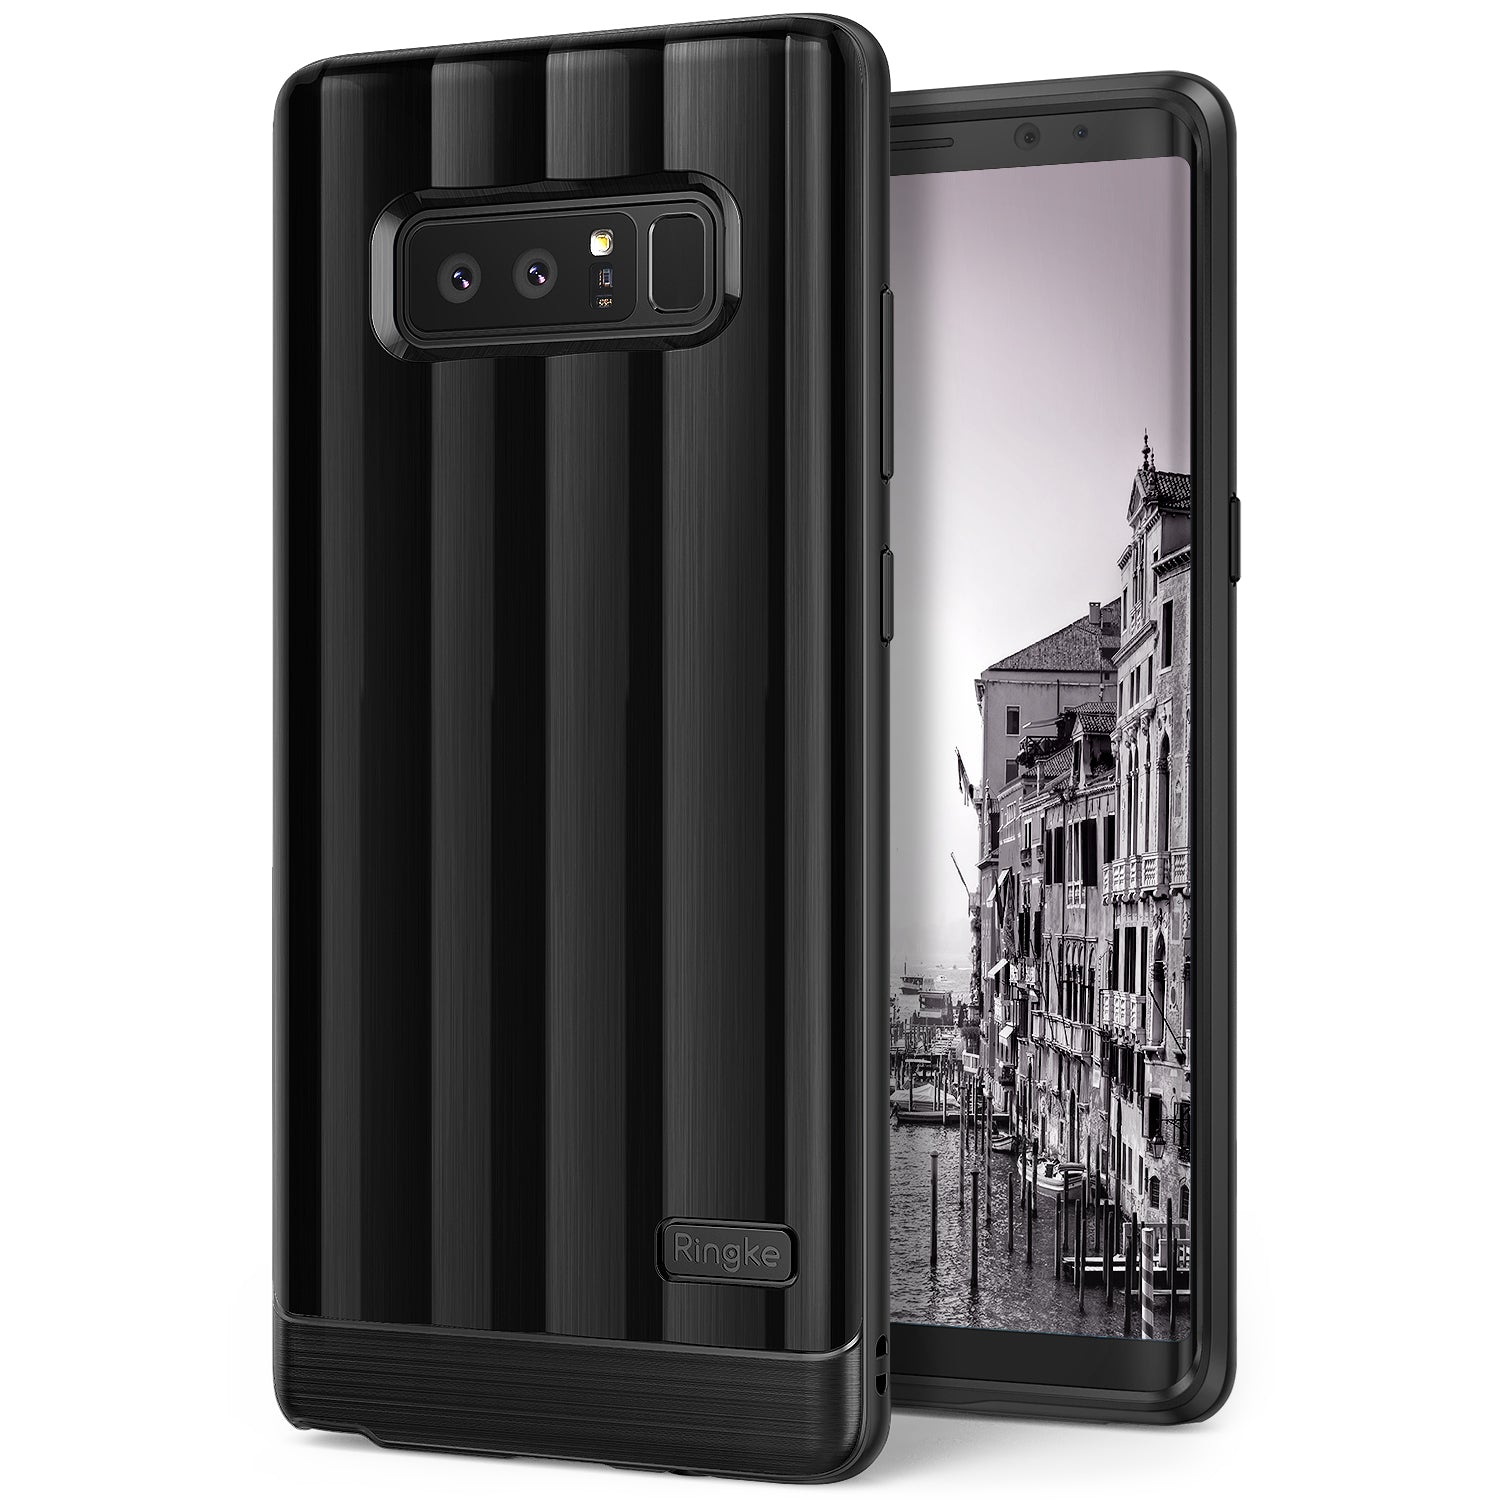 samsung galaxy note 8 ringke flex s pro case titanium black